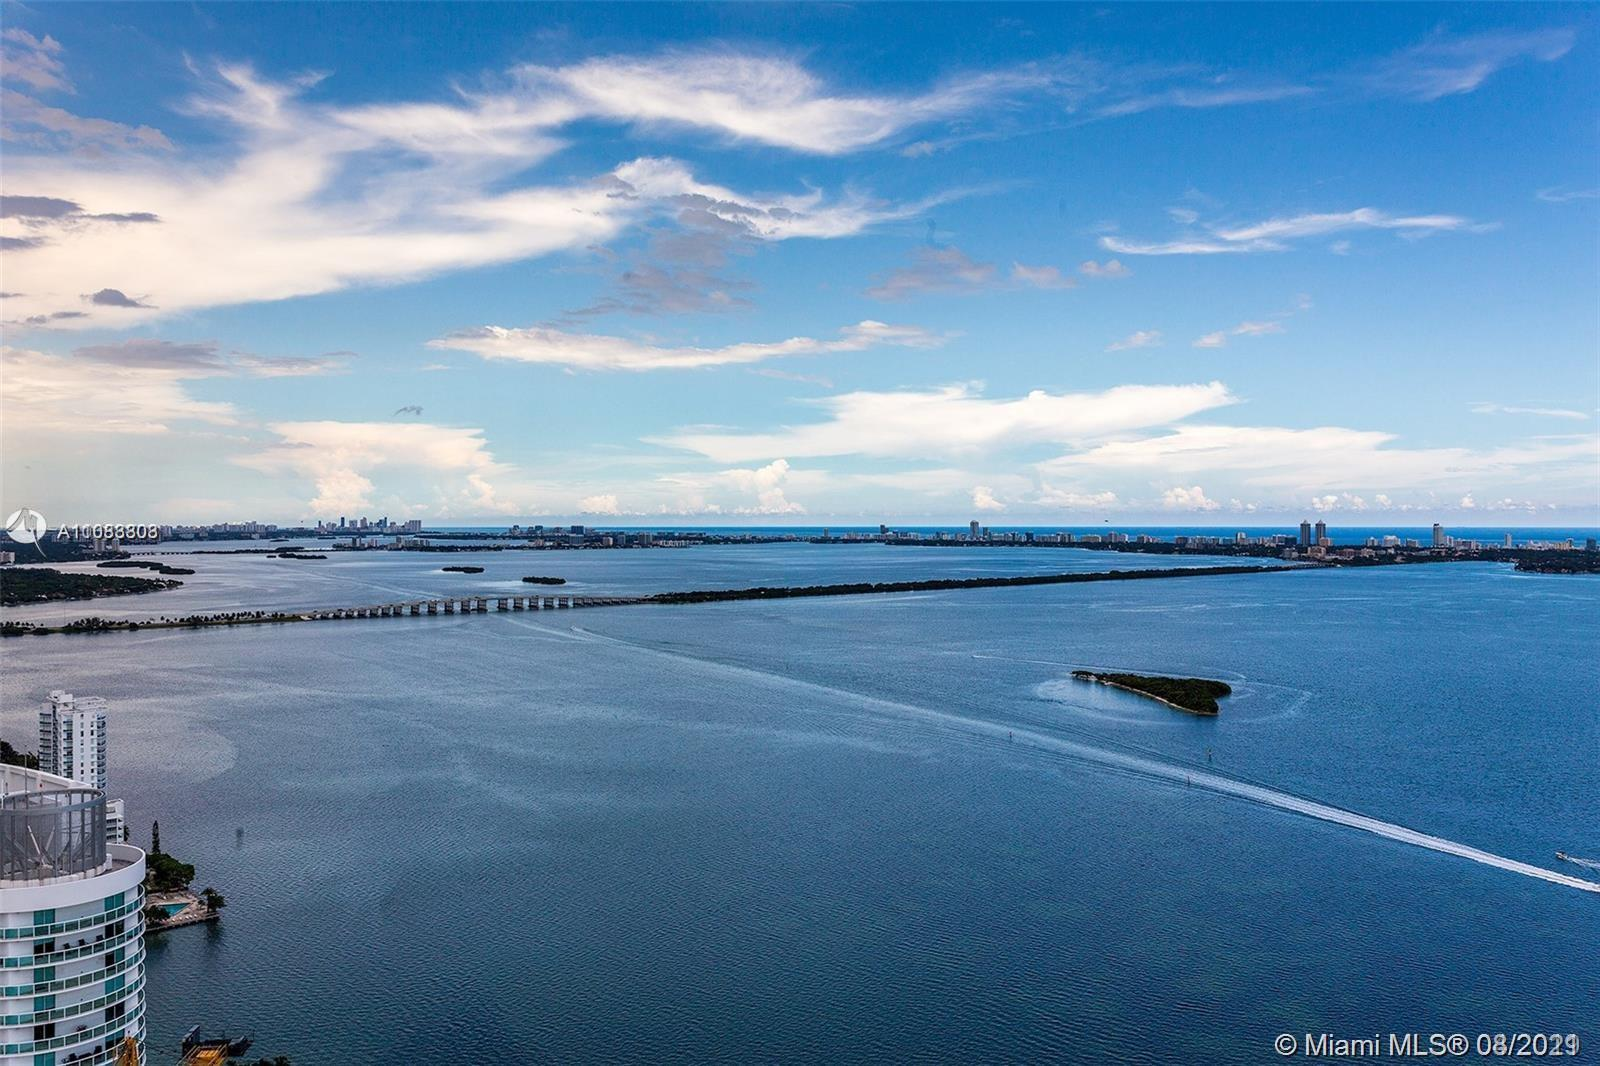 Unrivaled view of crystal clear ocean and Miami Beach - view is guaranteed no possibility of future